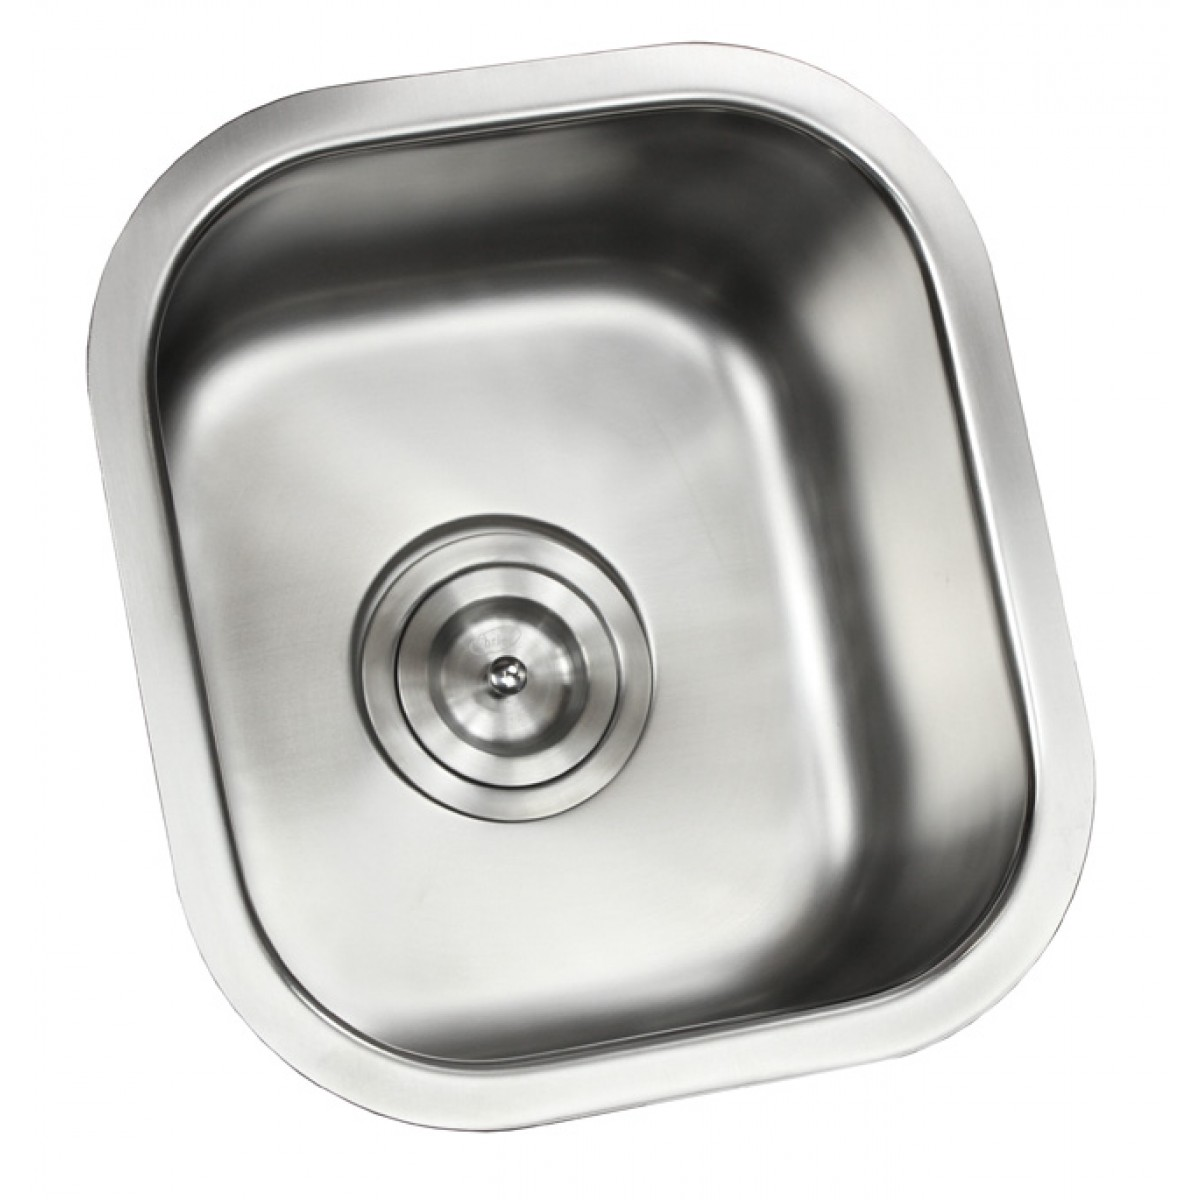 Ariel Pearl 14 Inch Stainless Steel Undermount Single Bowl